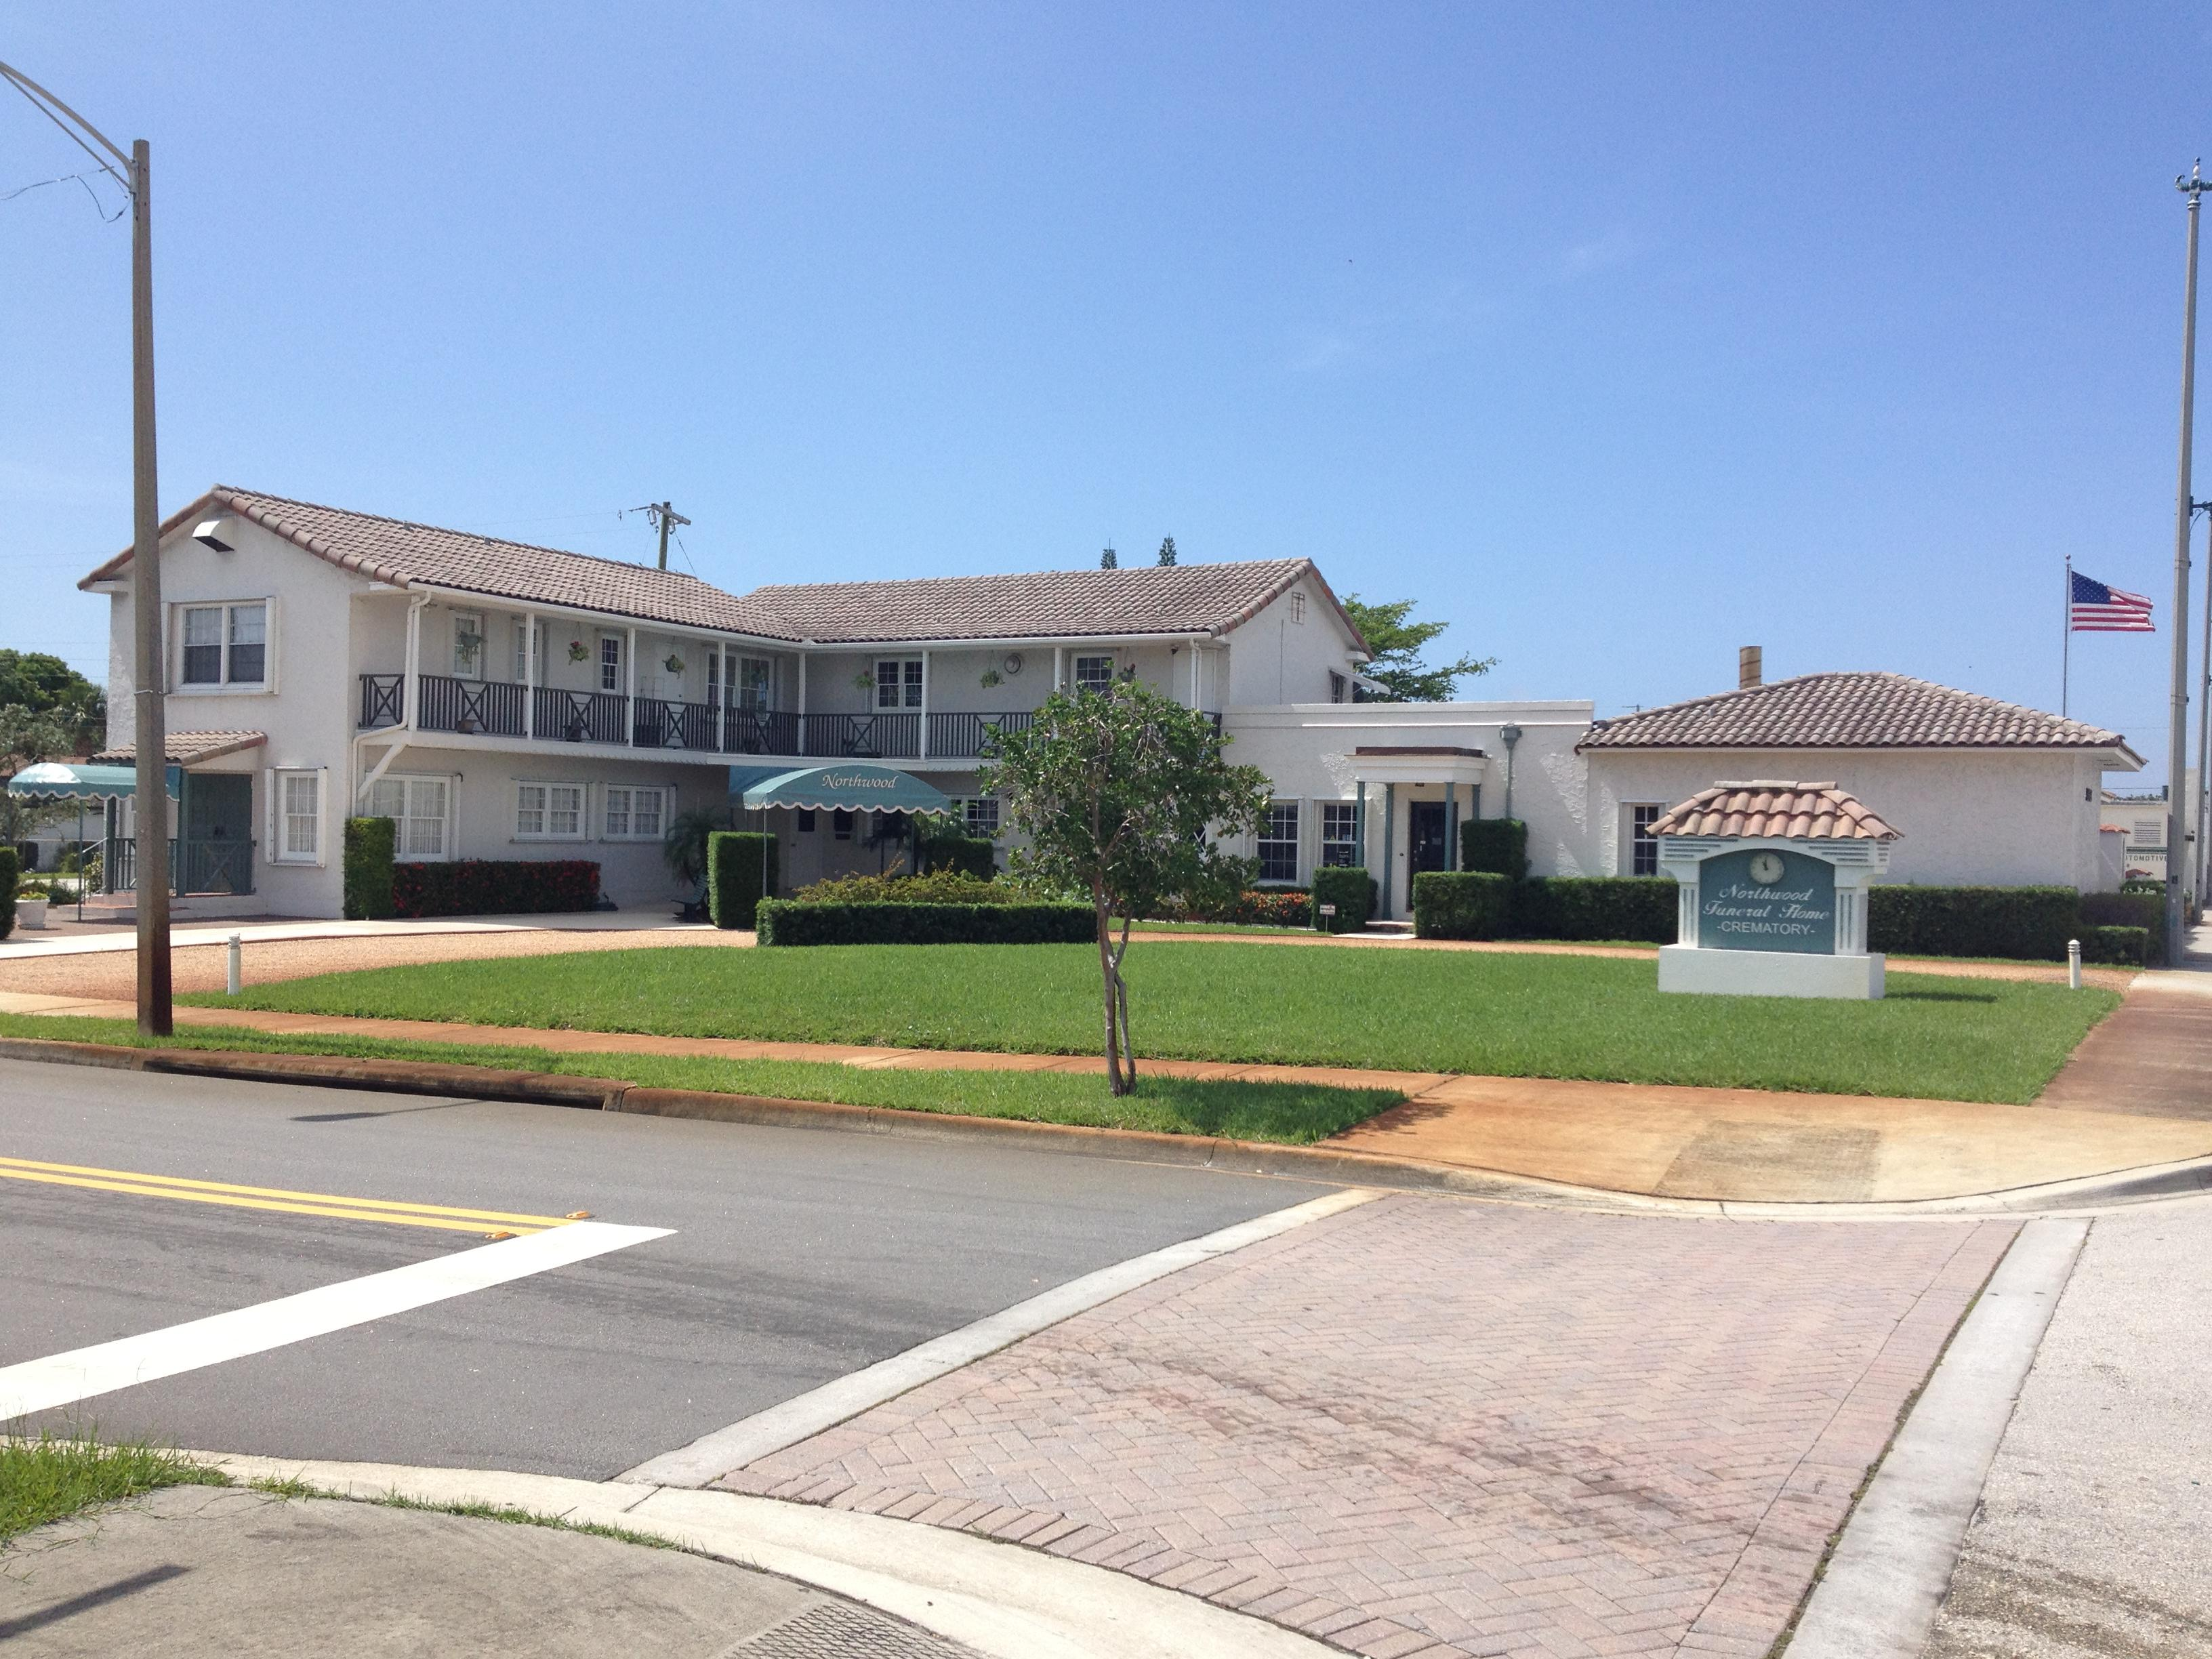 Northwood Funeral Home Crematory West Palm Beach Fl